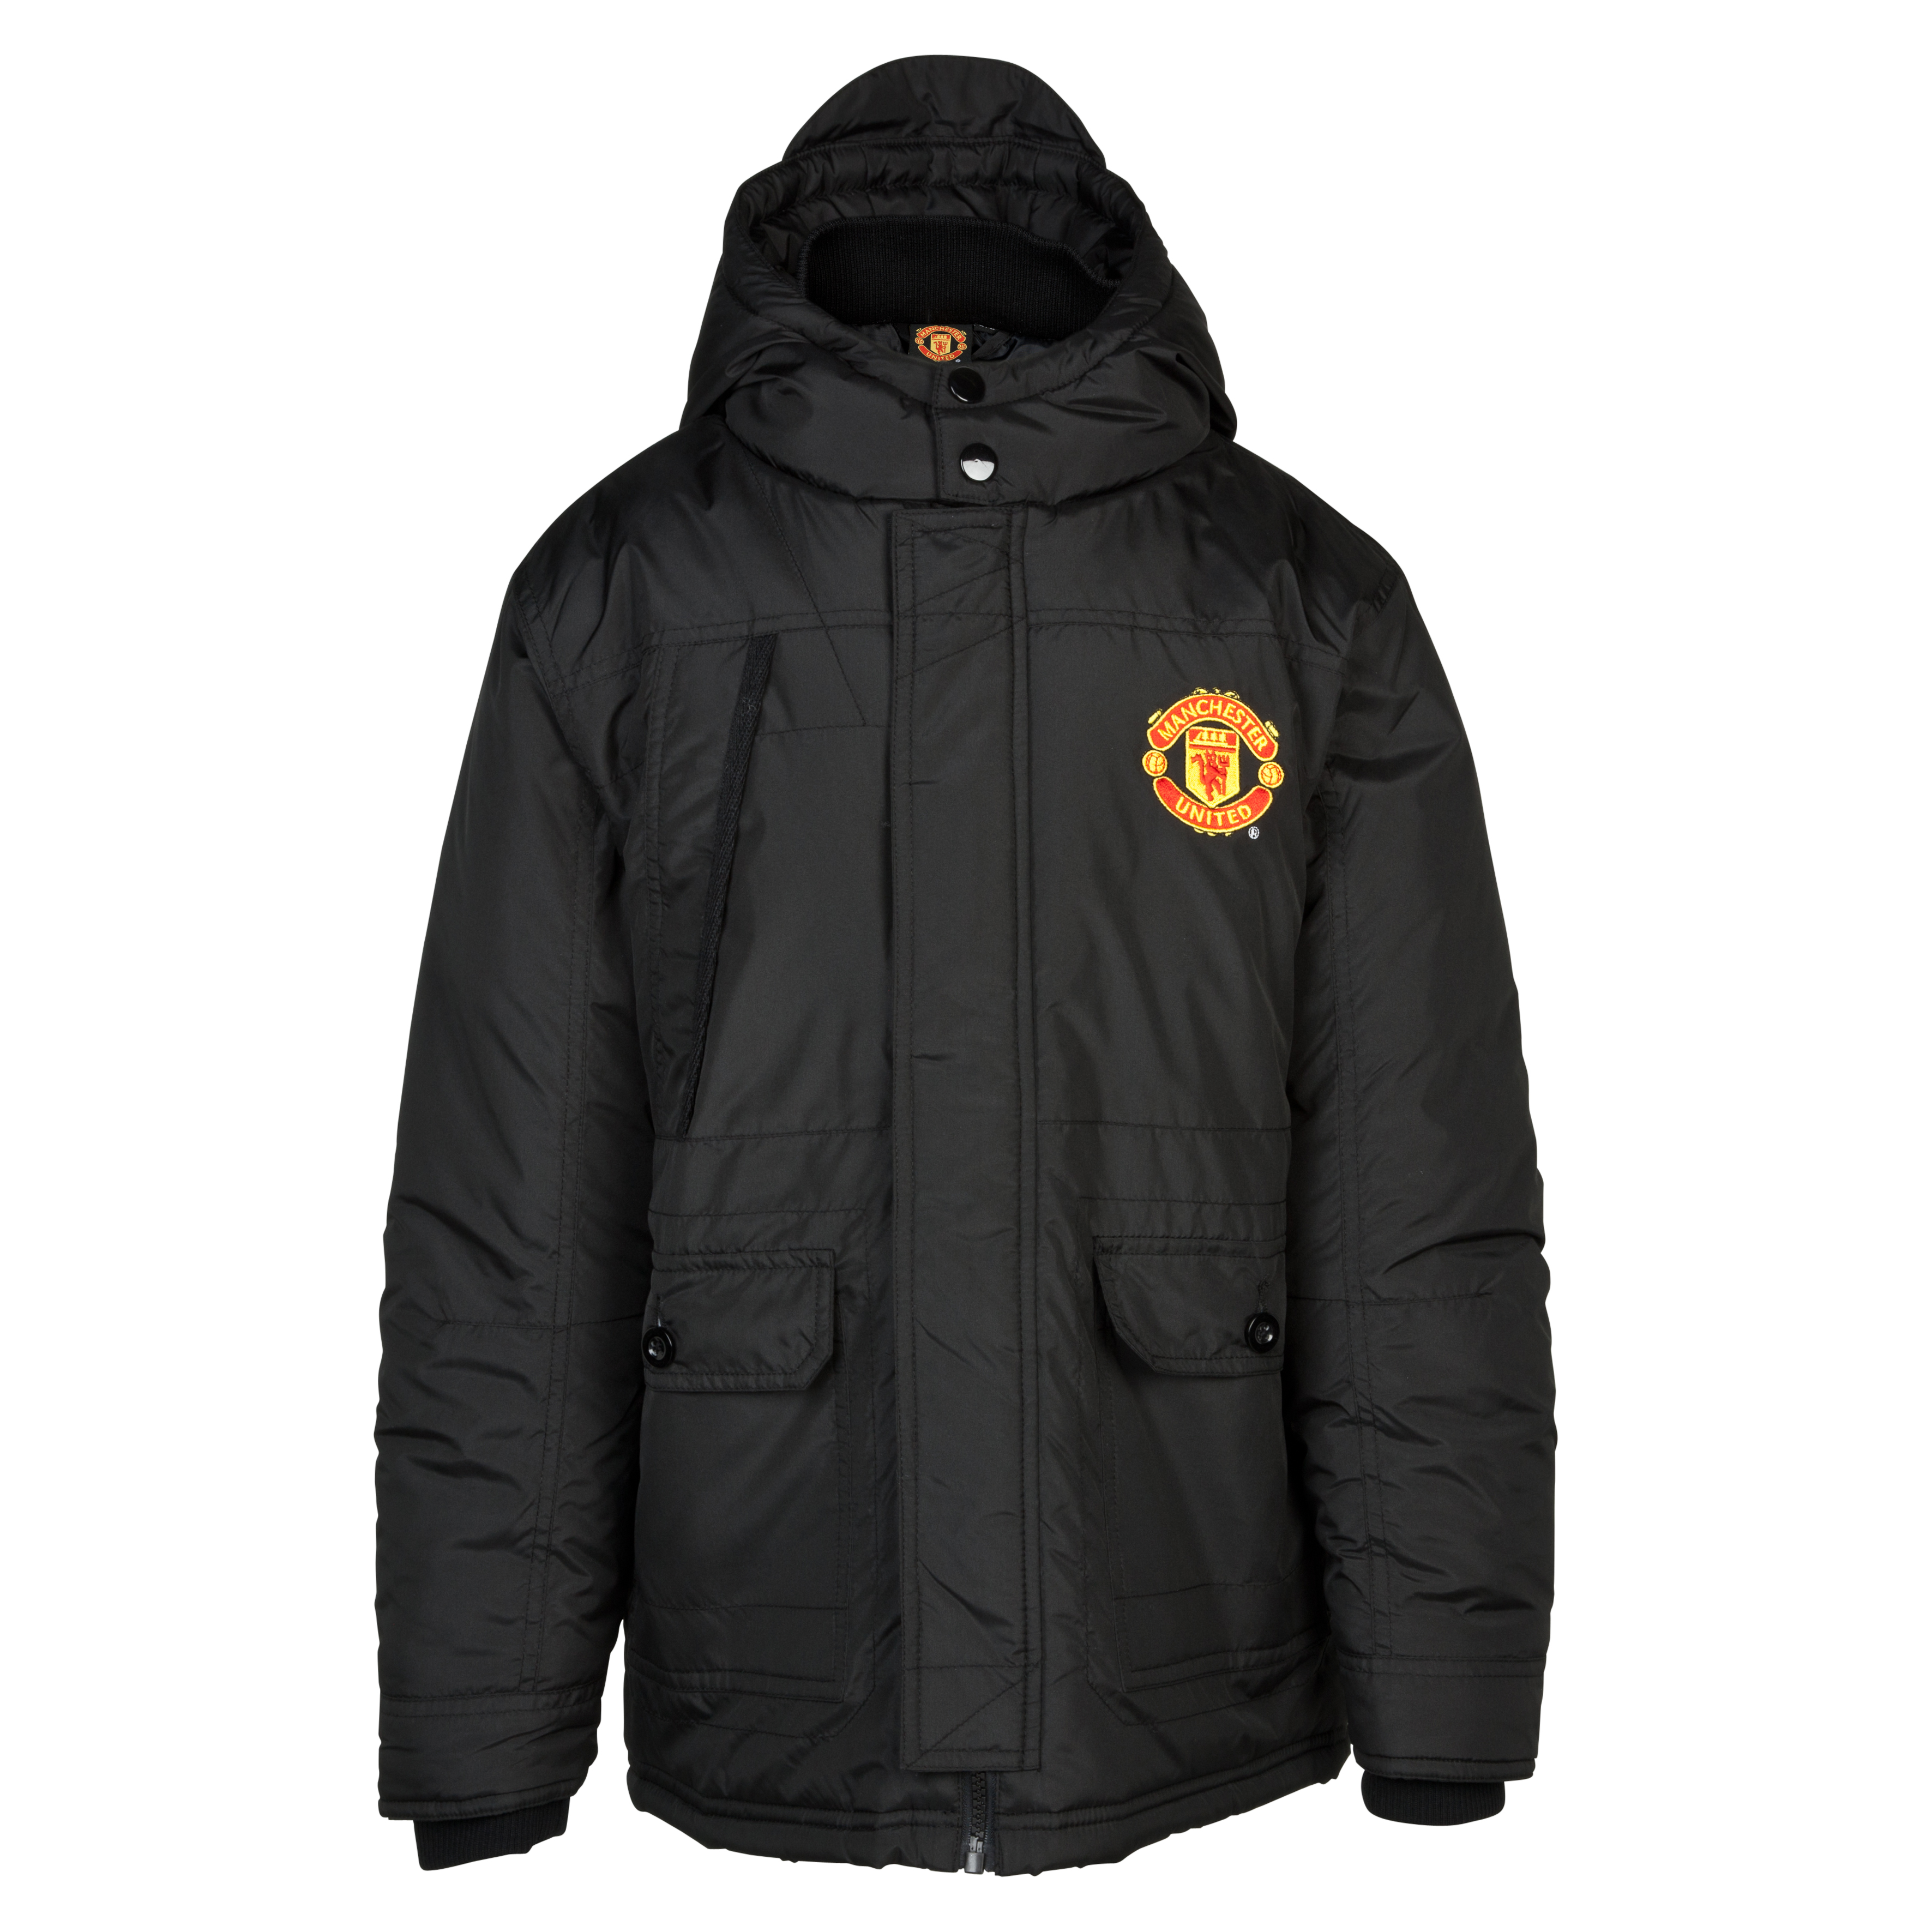 Manchester United Padded Jacket - Older Boys Black